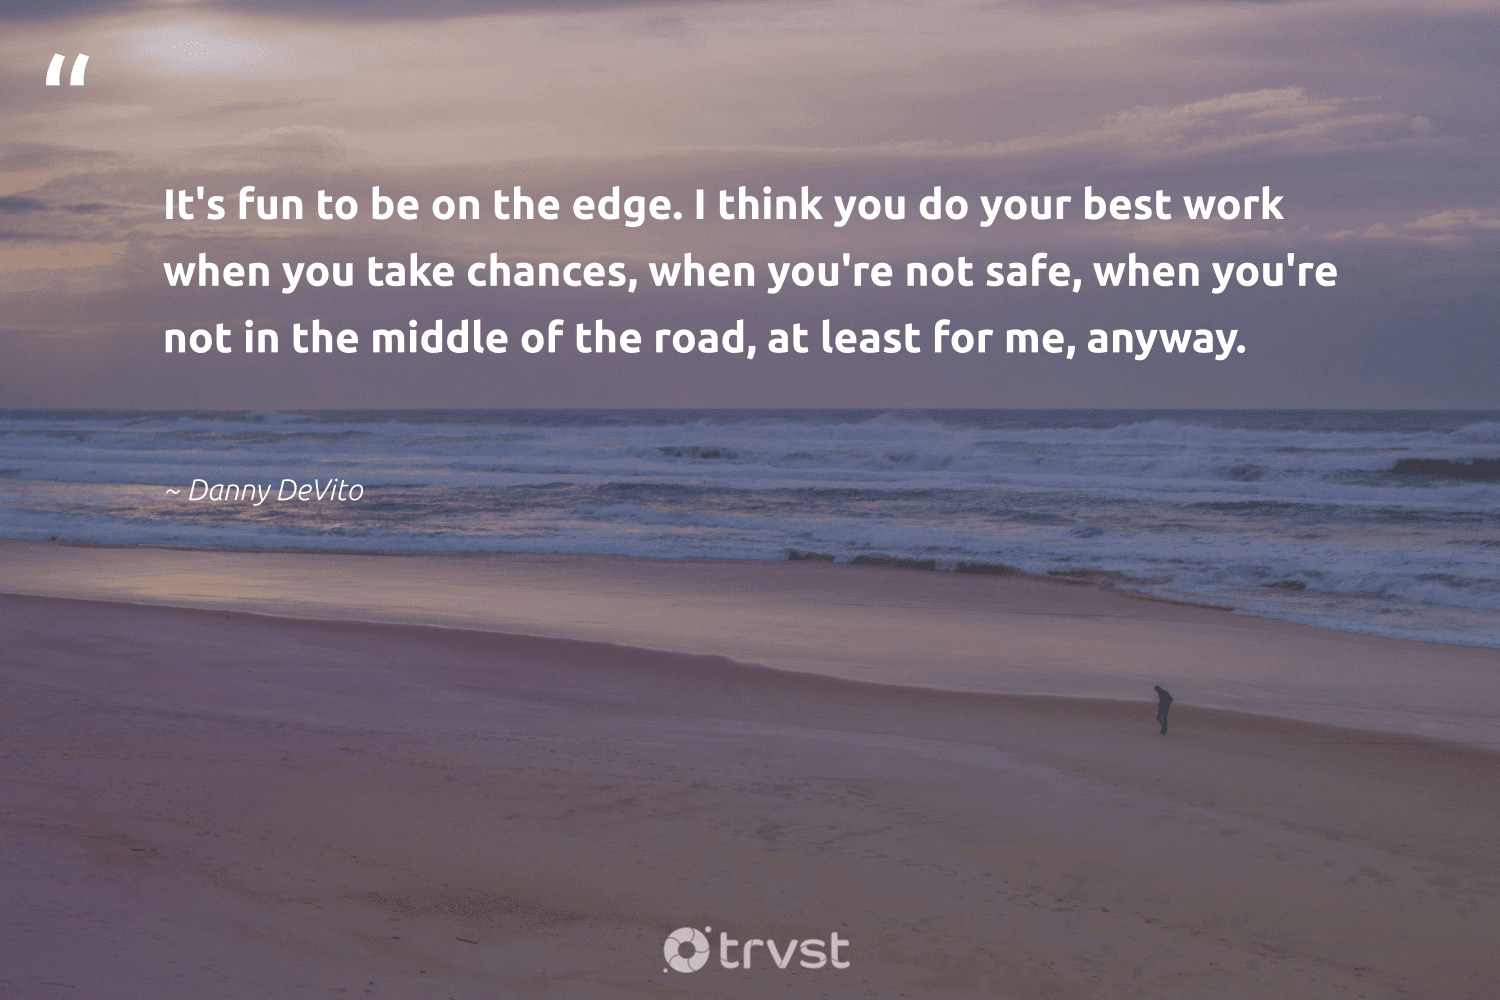 """""""It's fun to be on the edge. I think you do your best work when you take chances, when you're not safe, when you're not in the middle of the road, at least for me, anyway.""""  - Danny DeVito #trvst #quotes #softskills #bethechange #begreat #impact #nevergiveup #dotherightthing #futureofwork #socialchange #socialimpact #changetheworld"""